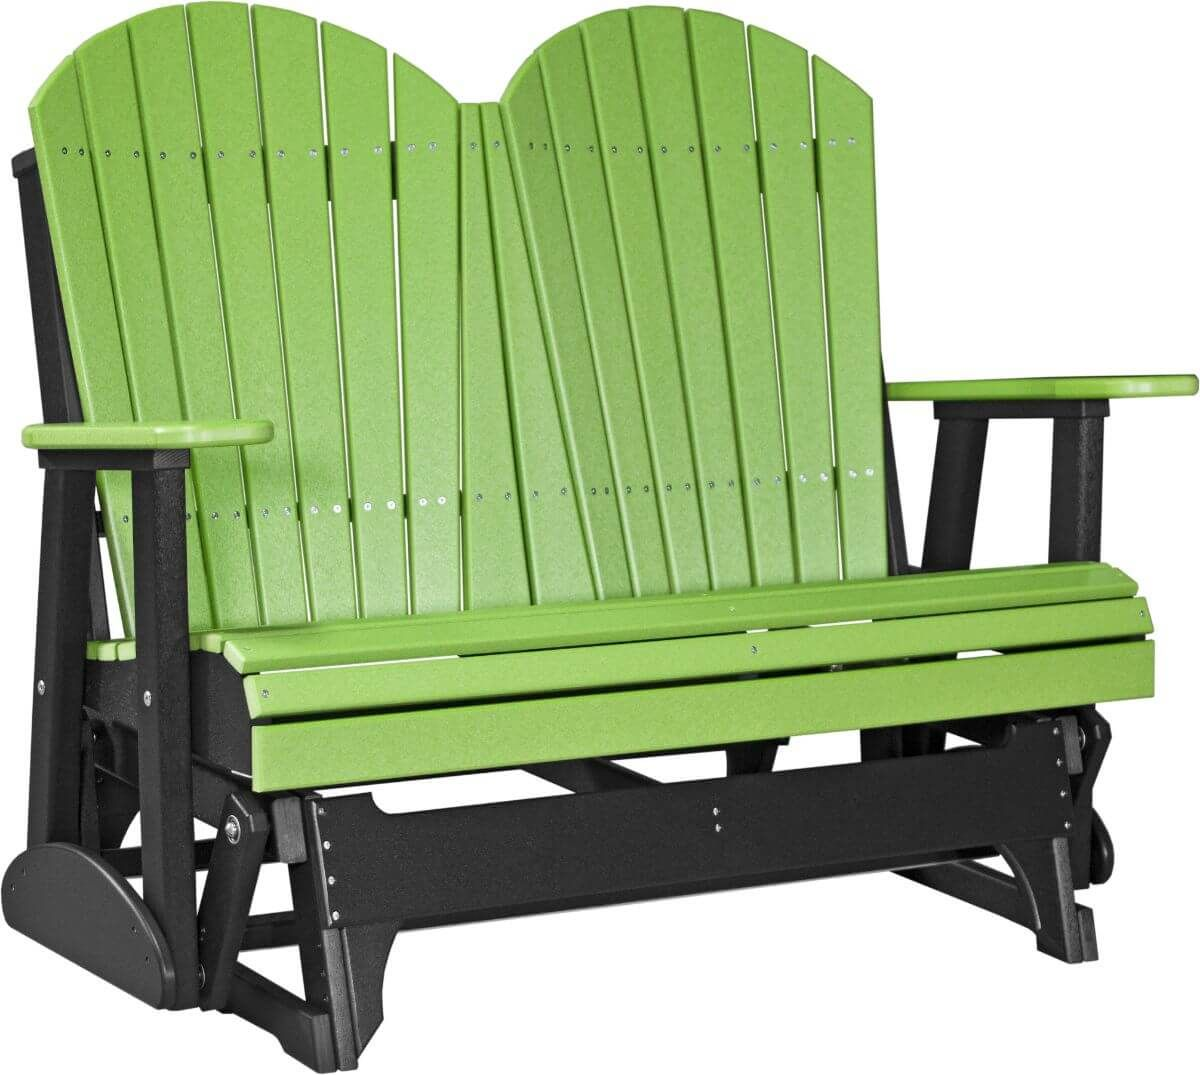 Lime Green and Black Tahiti Loveseat Patio Glider